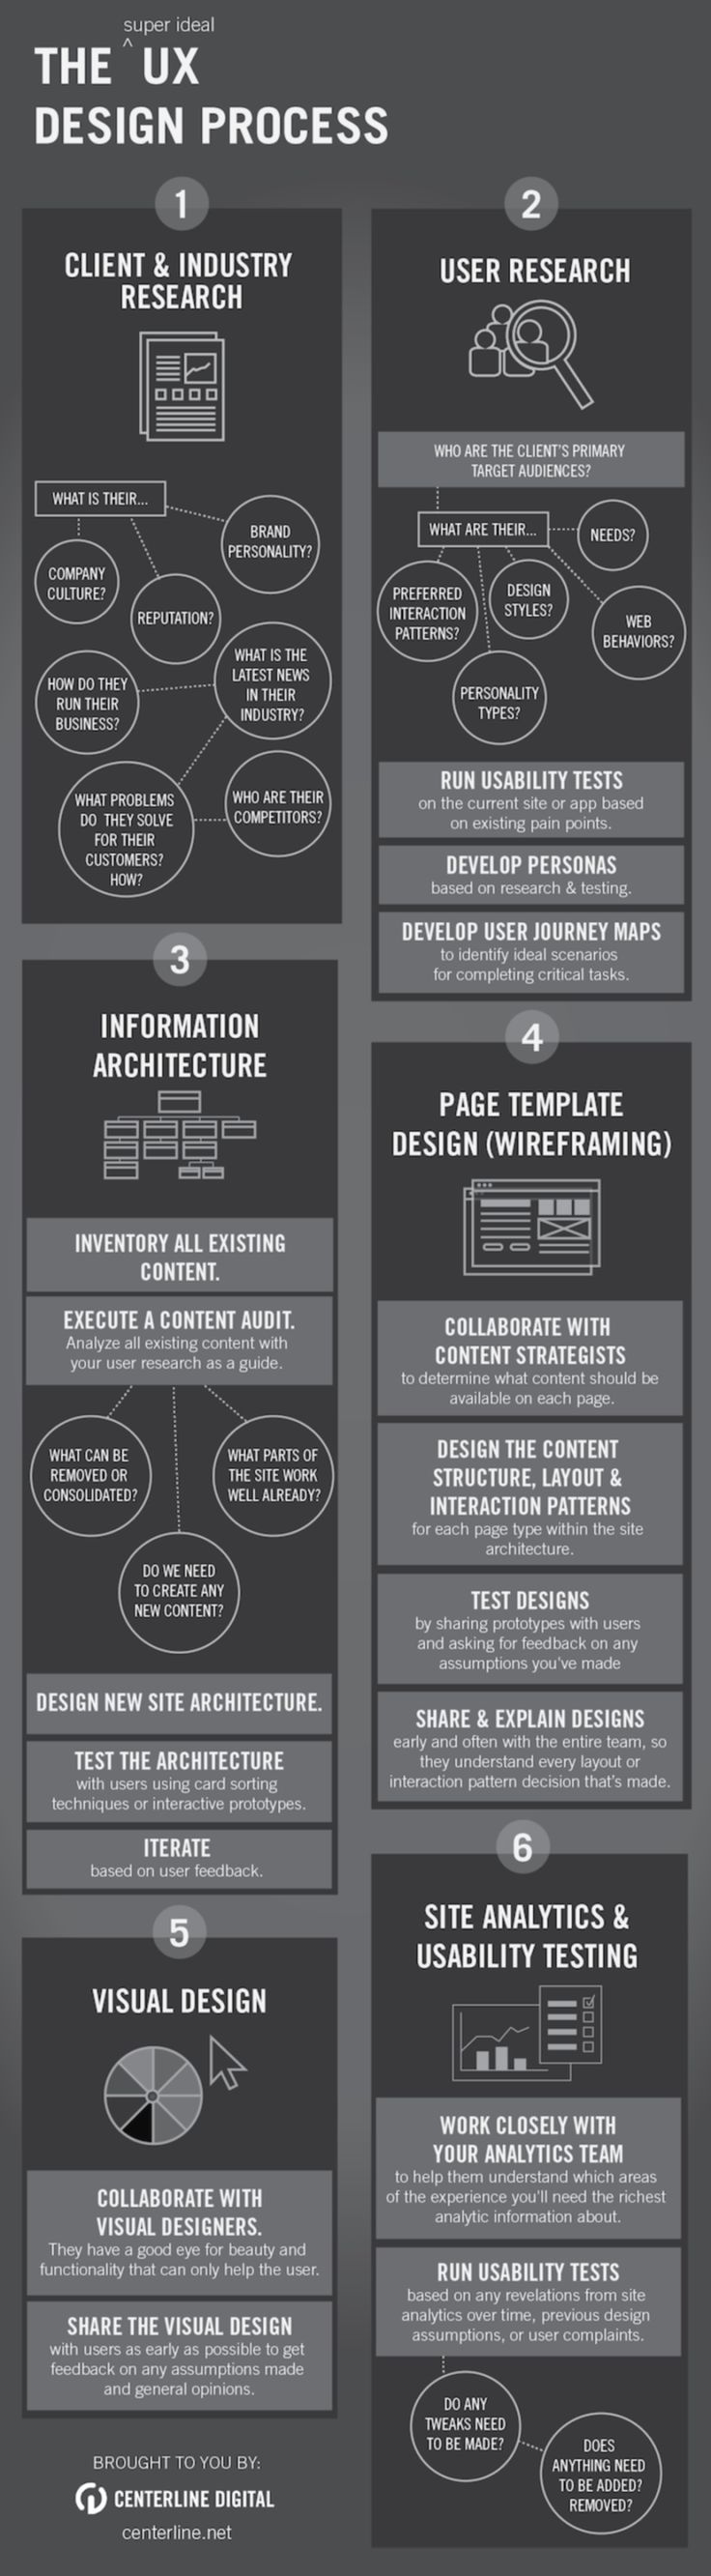 fashion designer cover letter%0A Infographic  User Experience Design Process  infographic